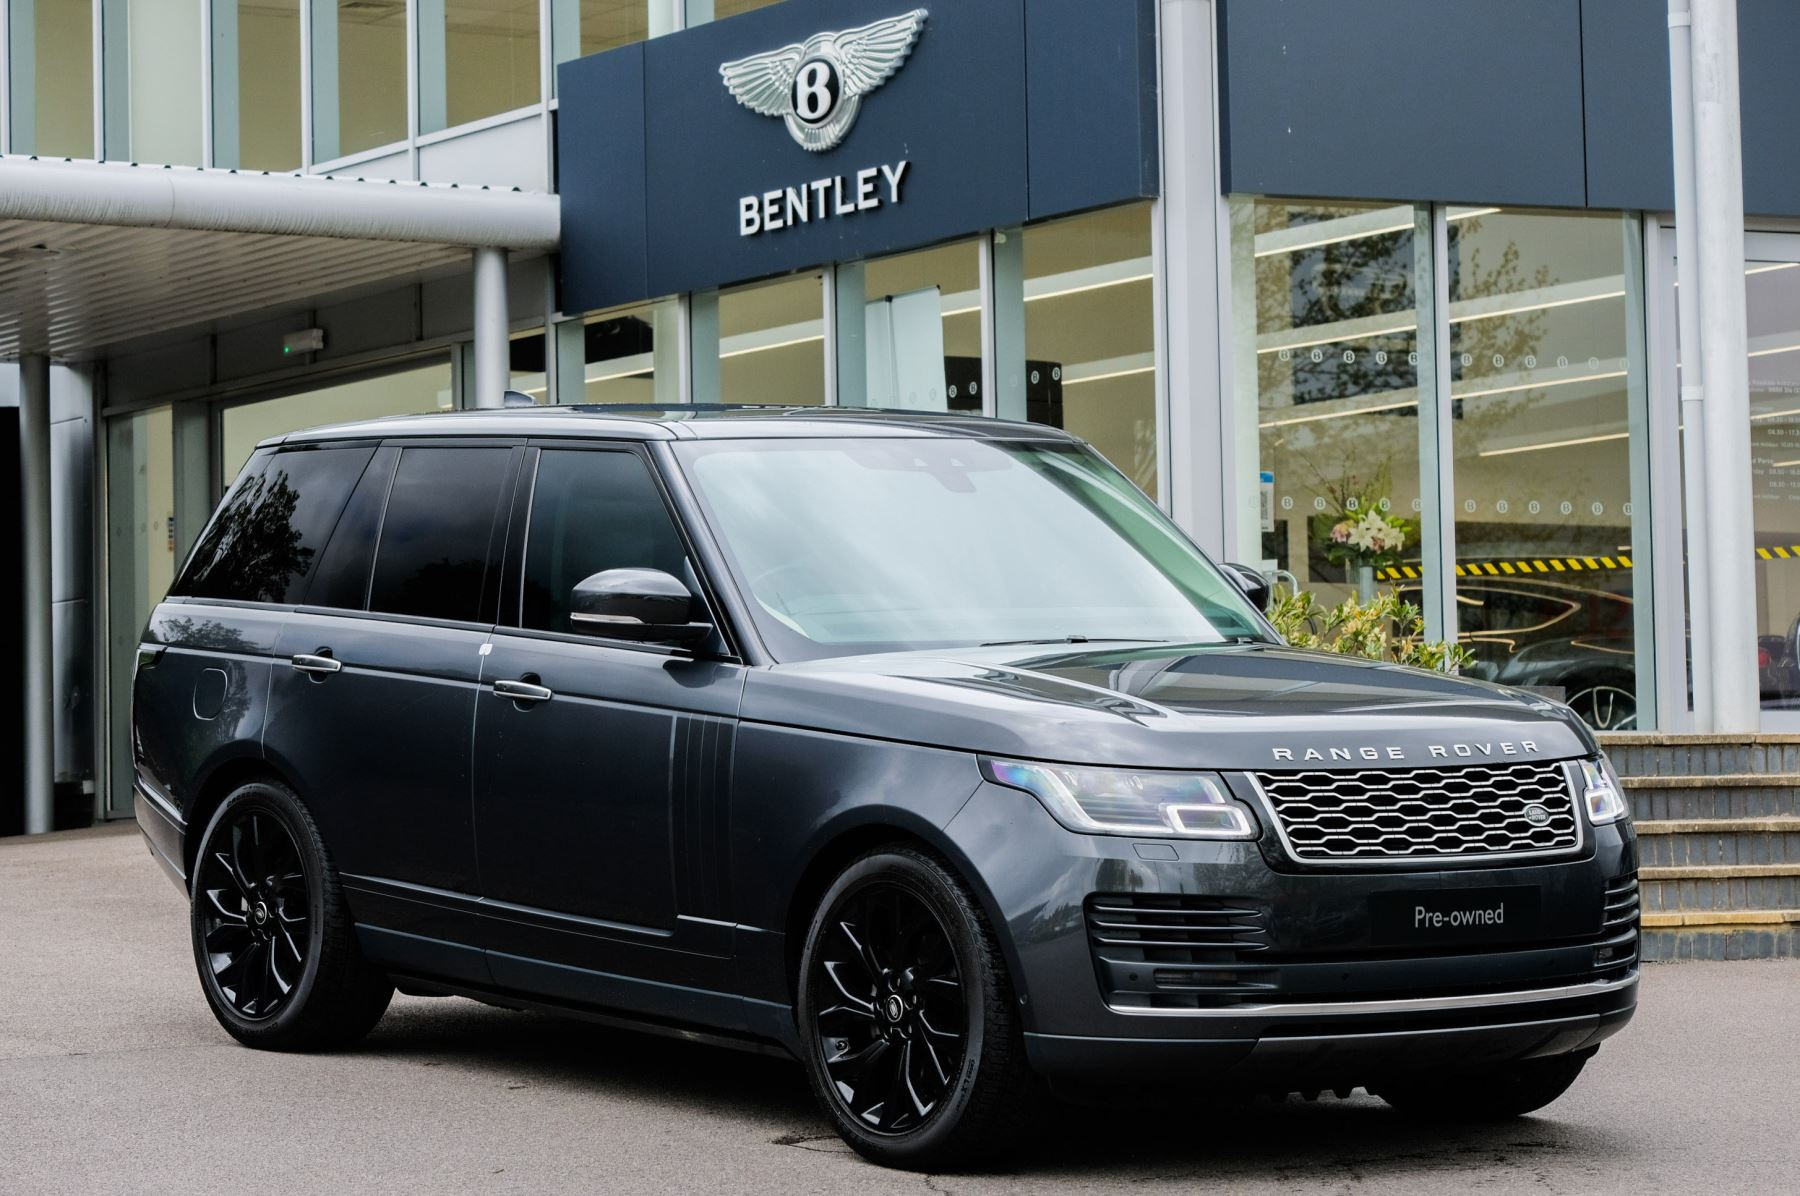 Land Rover Range Rover 3.0 SDV6 Vogue SE - Panoramic Roof - Privacy Glass - 21 inch Alloys image 37